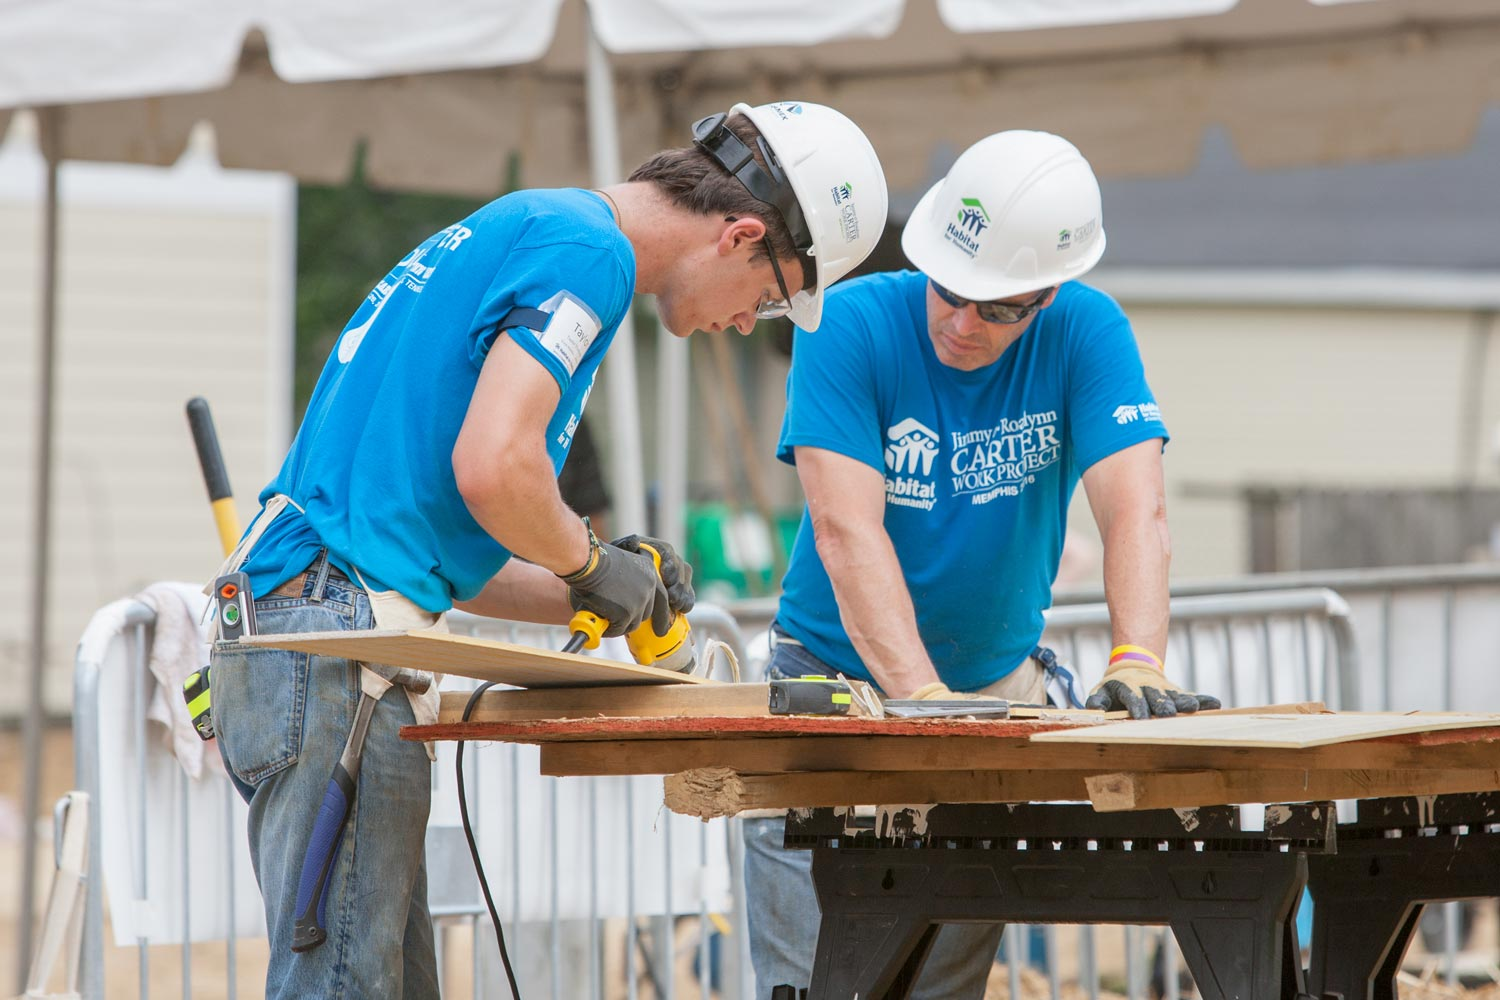 Thompson realized this year that he wanted to devote even more time to Habitat for Humanity.